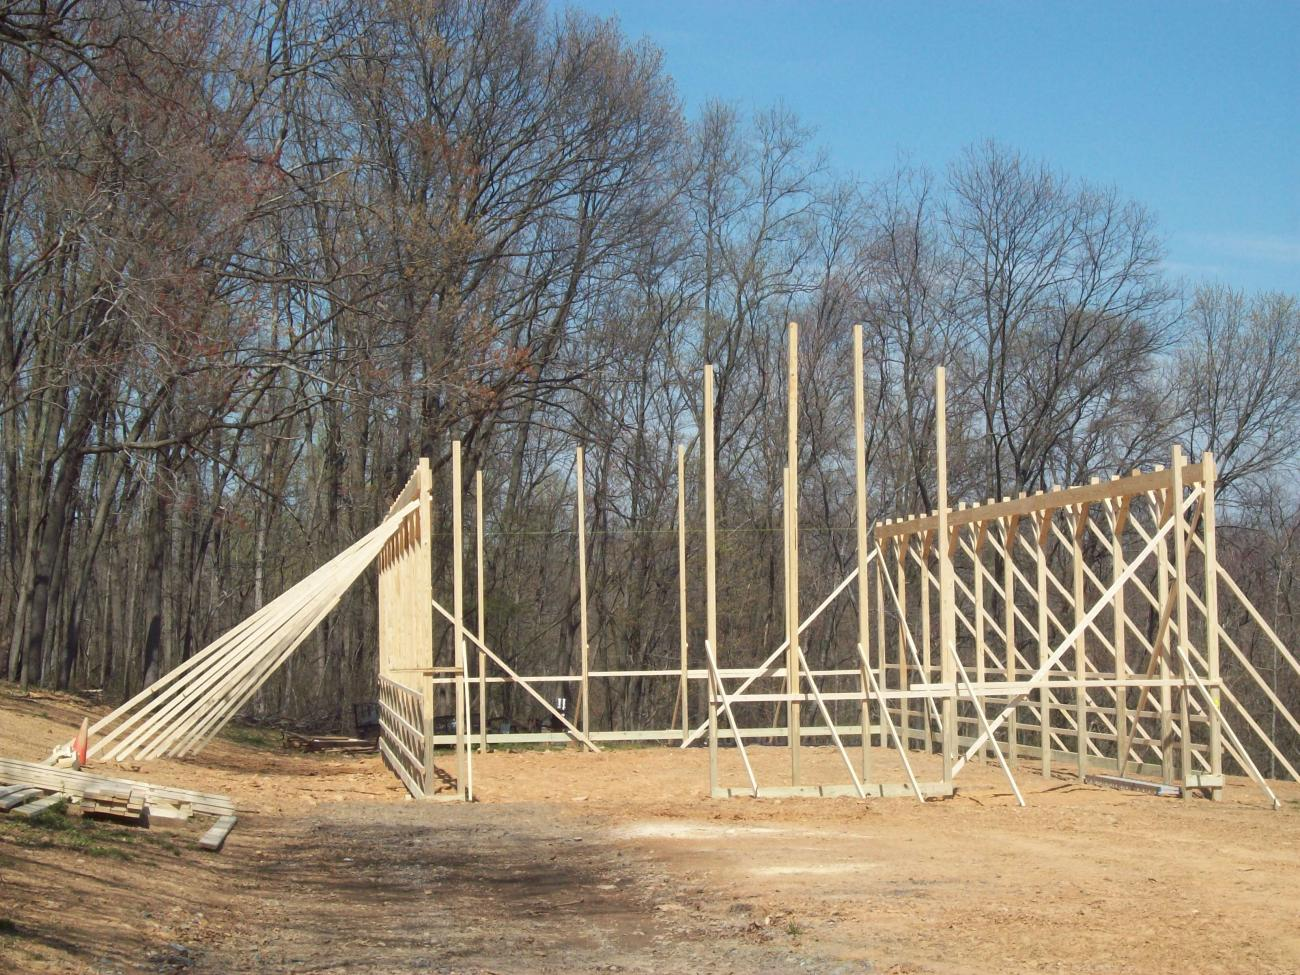 hight resolution of pole barn frame during construction